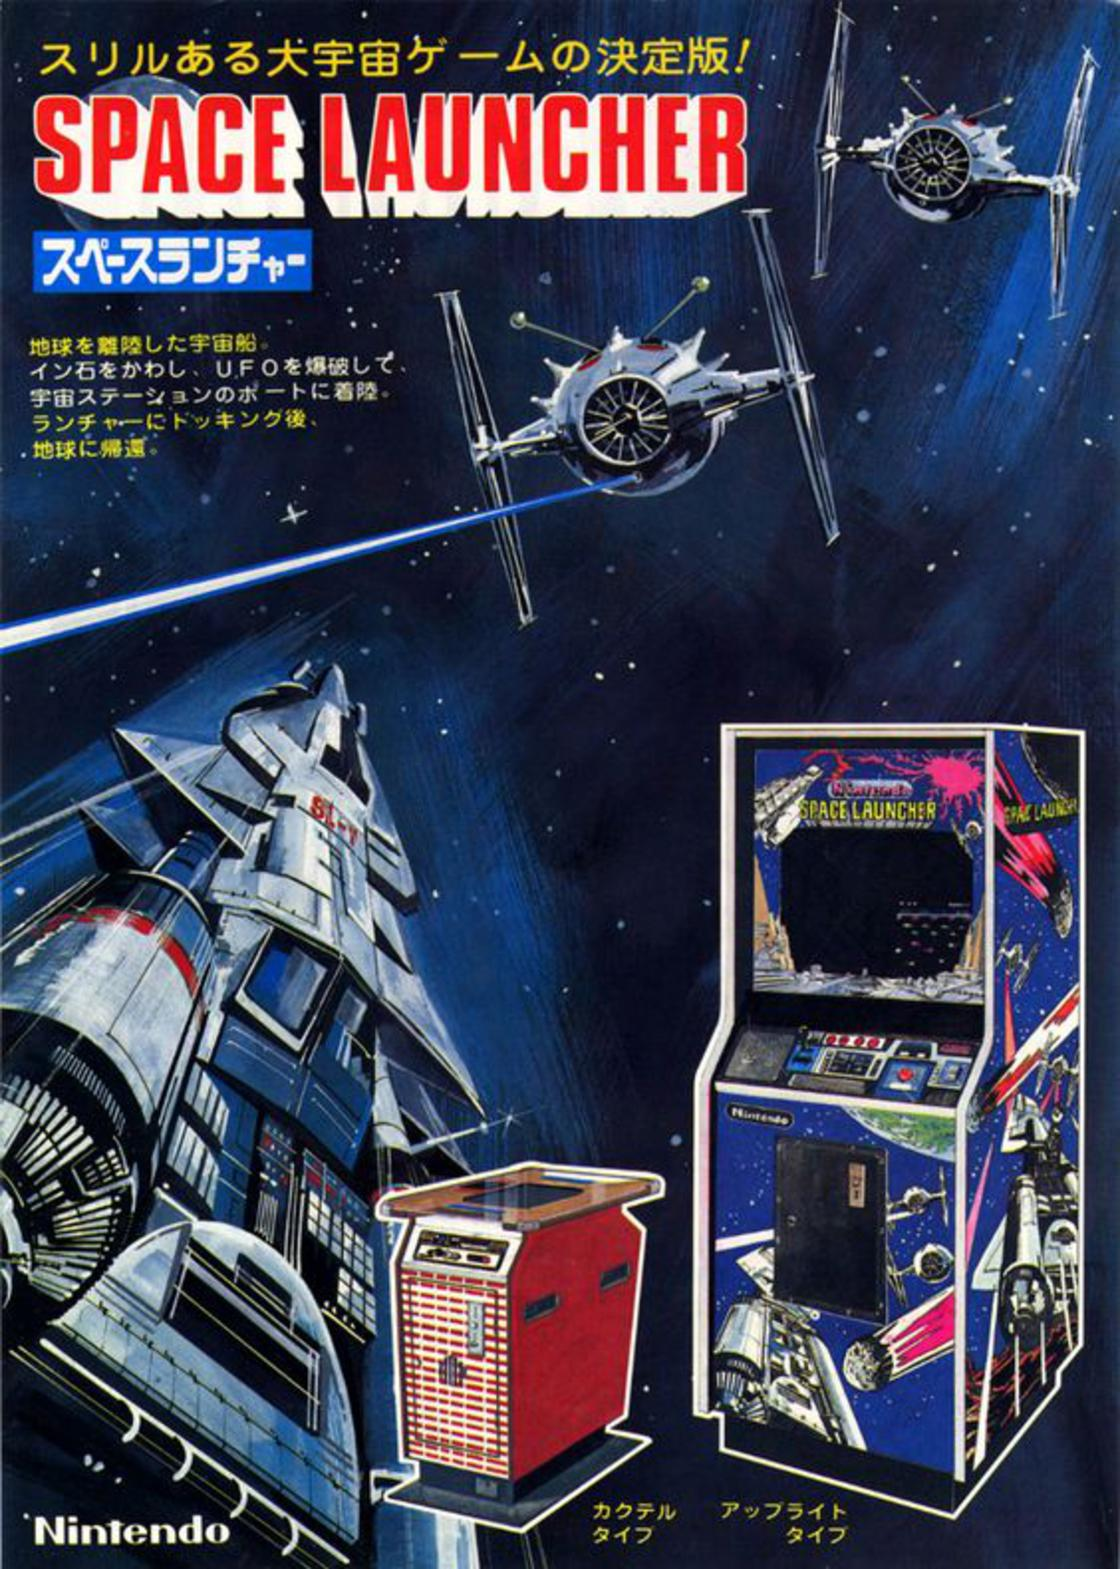 publicites-japonaises-jeux-video-1980-1.jpg